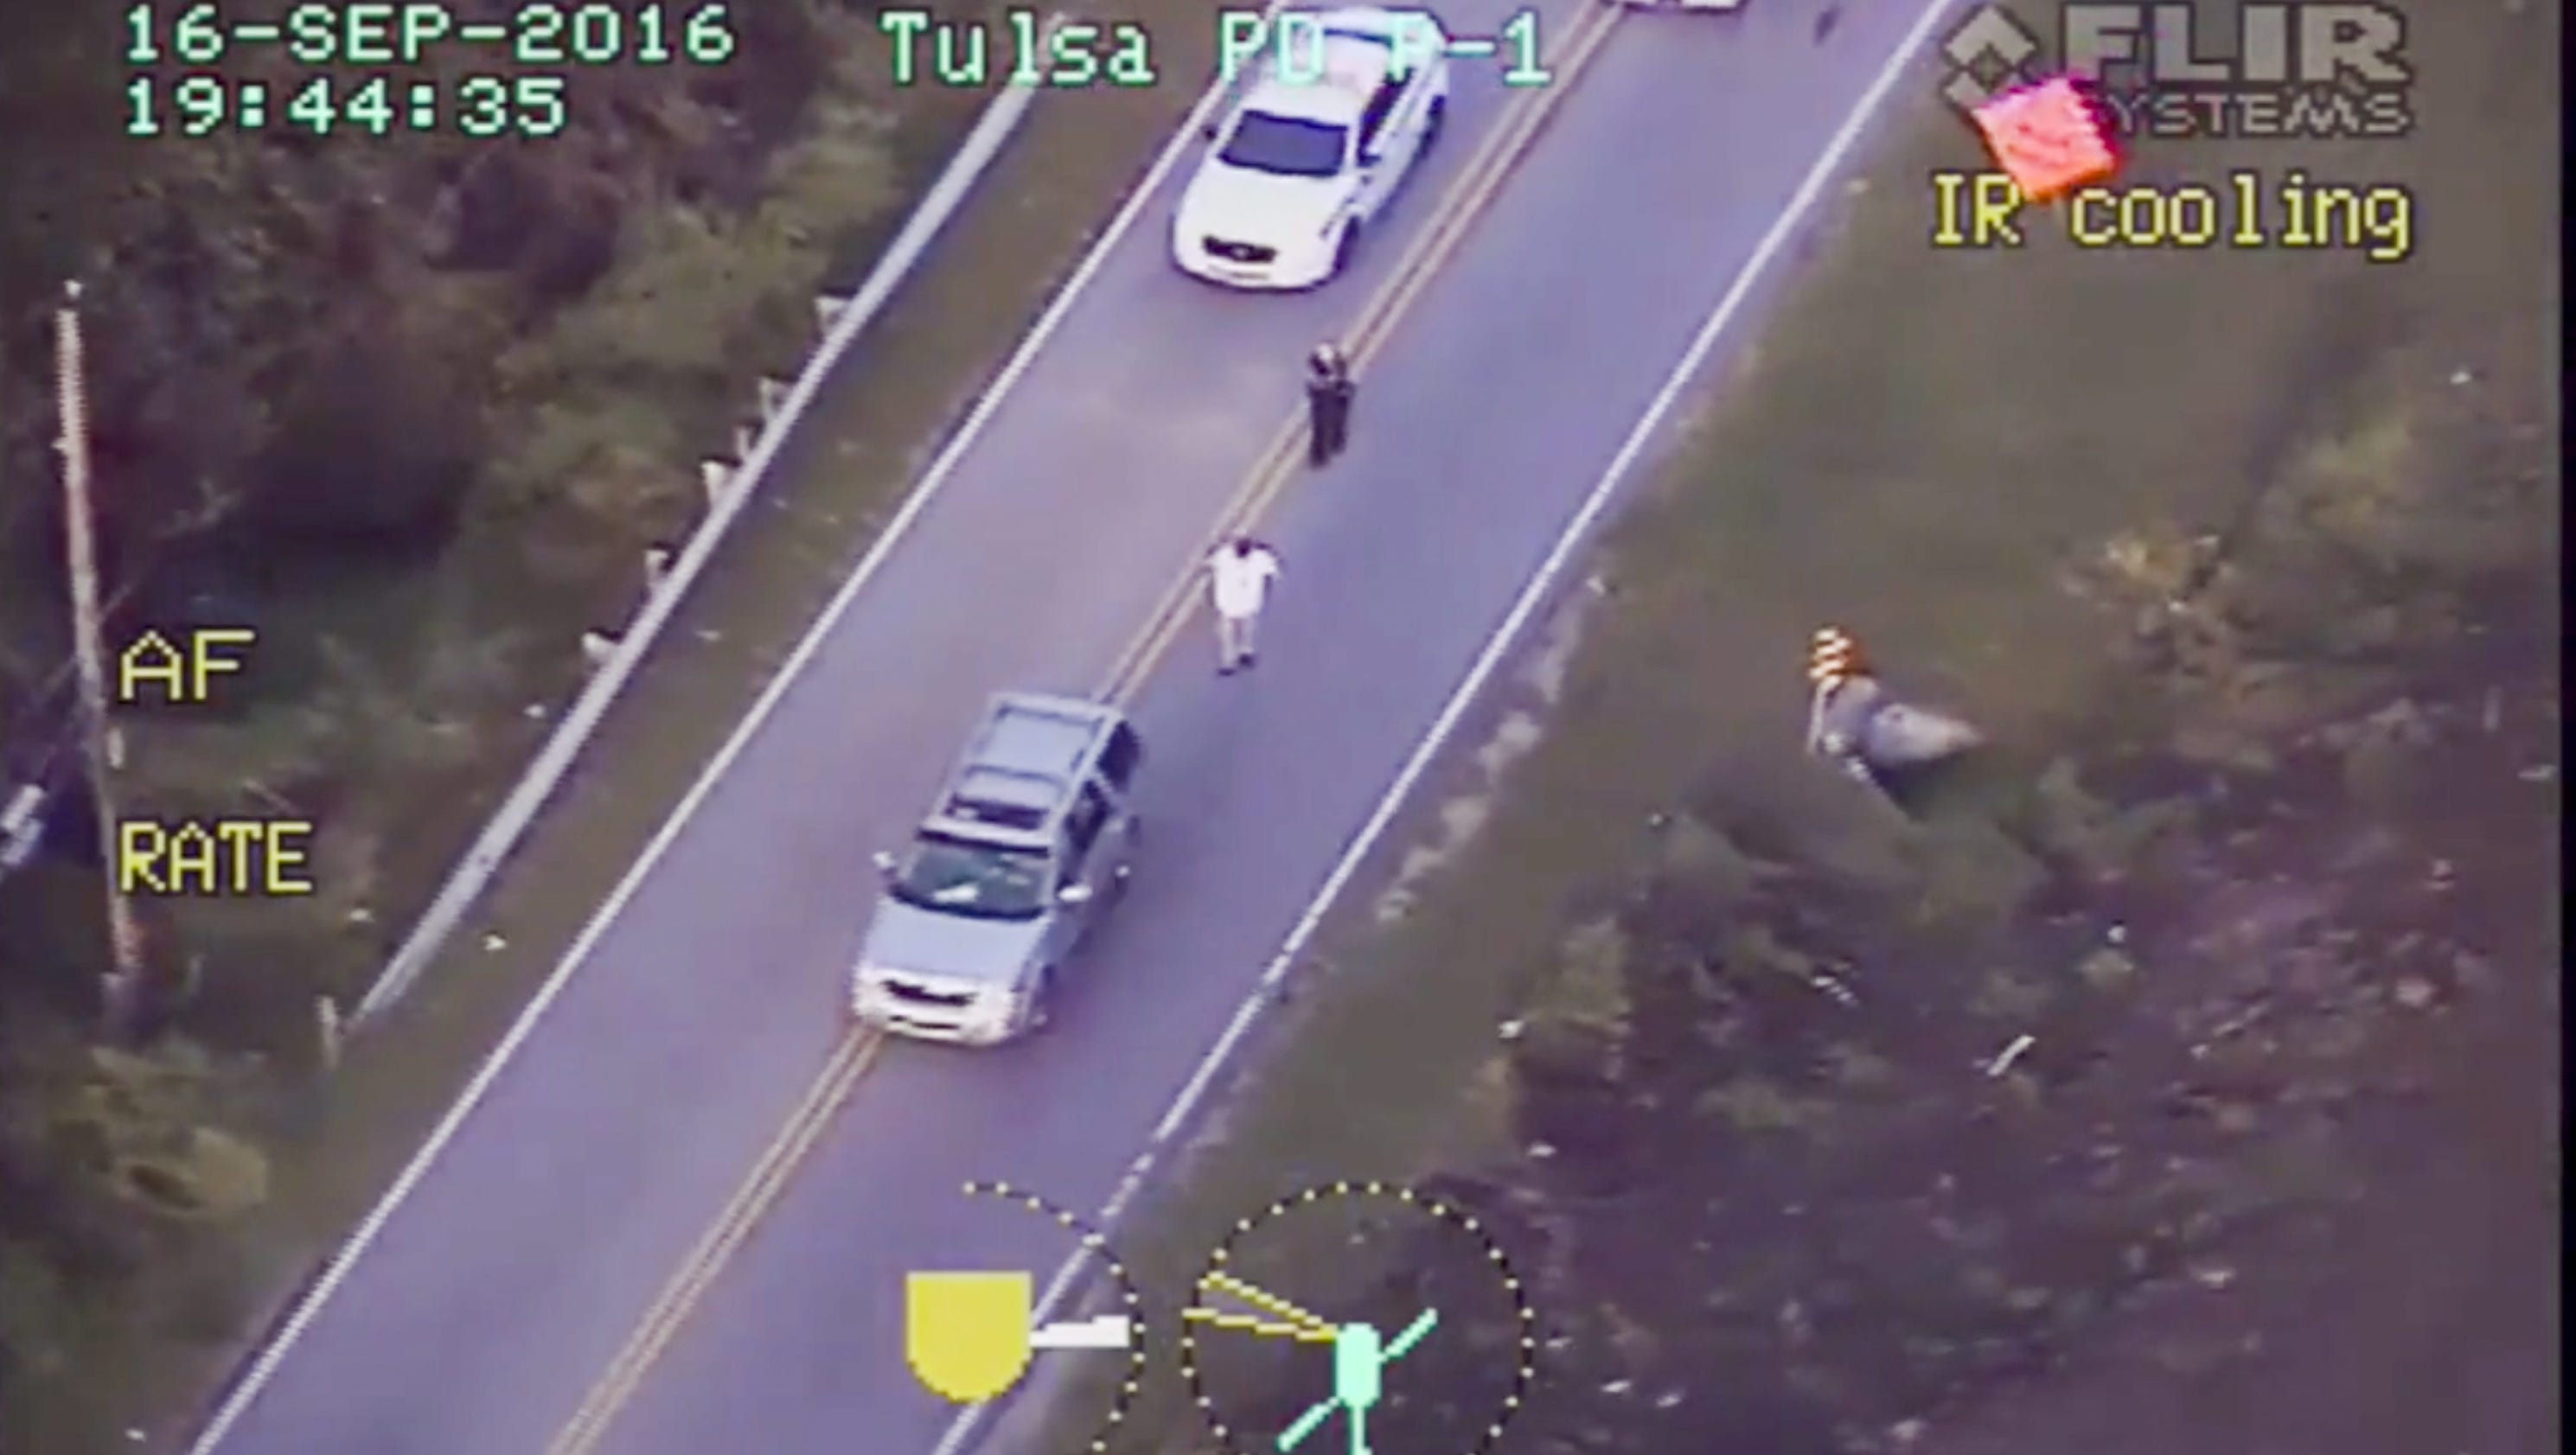 aclu tulsa officer shot terence crutcher in cold blood